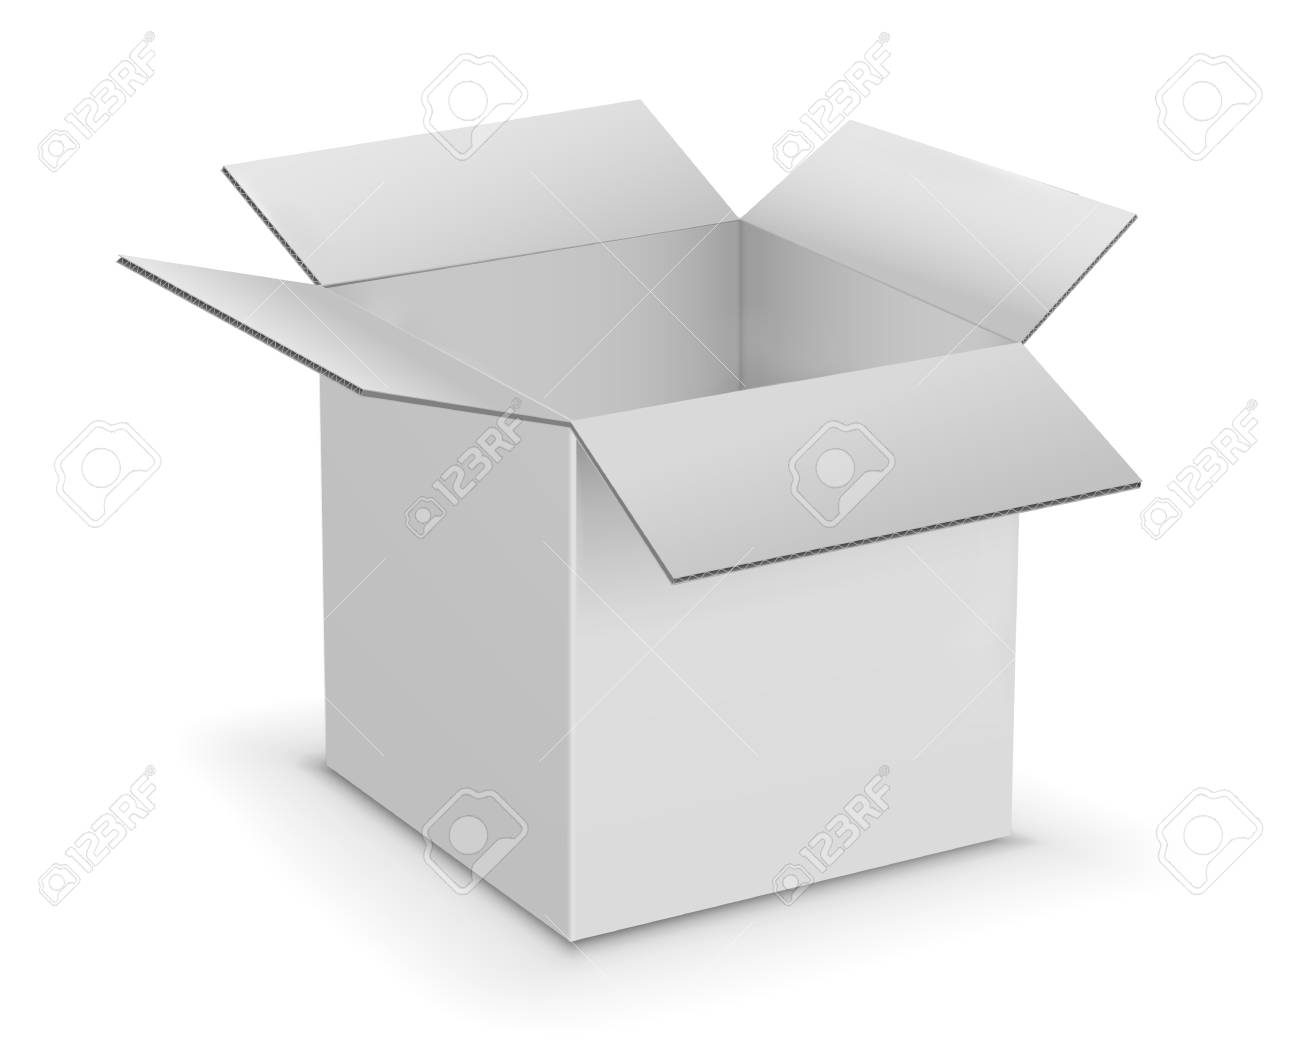 White Cardboard Boxes Template Royalty Free Cliparts Vectors And